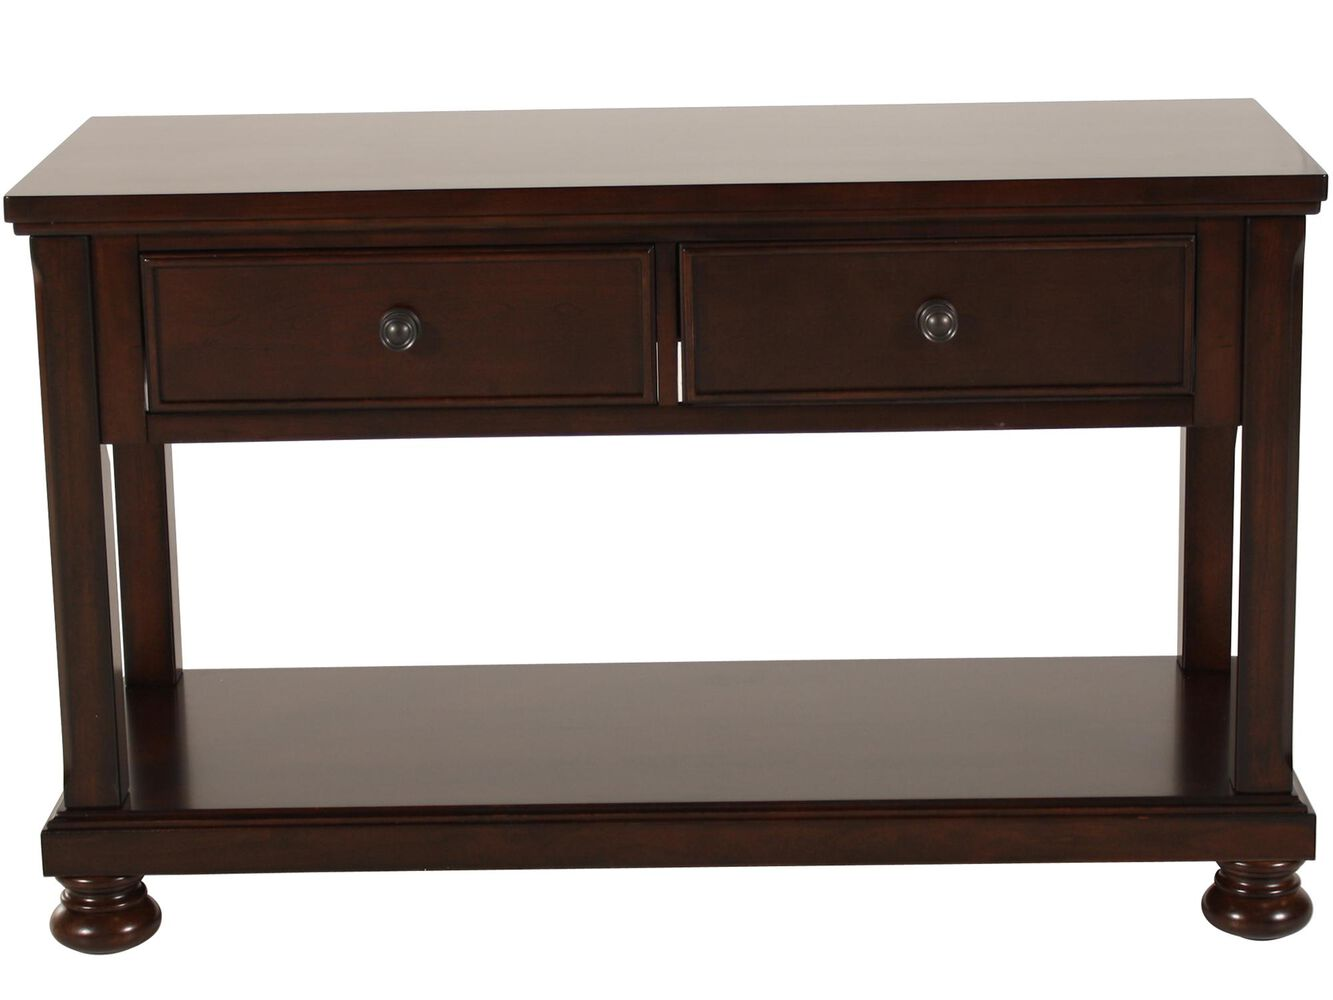 Two drawer traditional sofa table in brown cherry mathis for Sofa table pictures